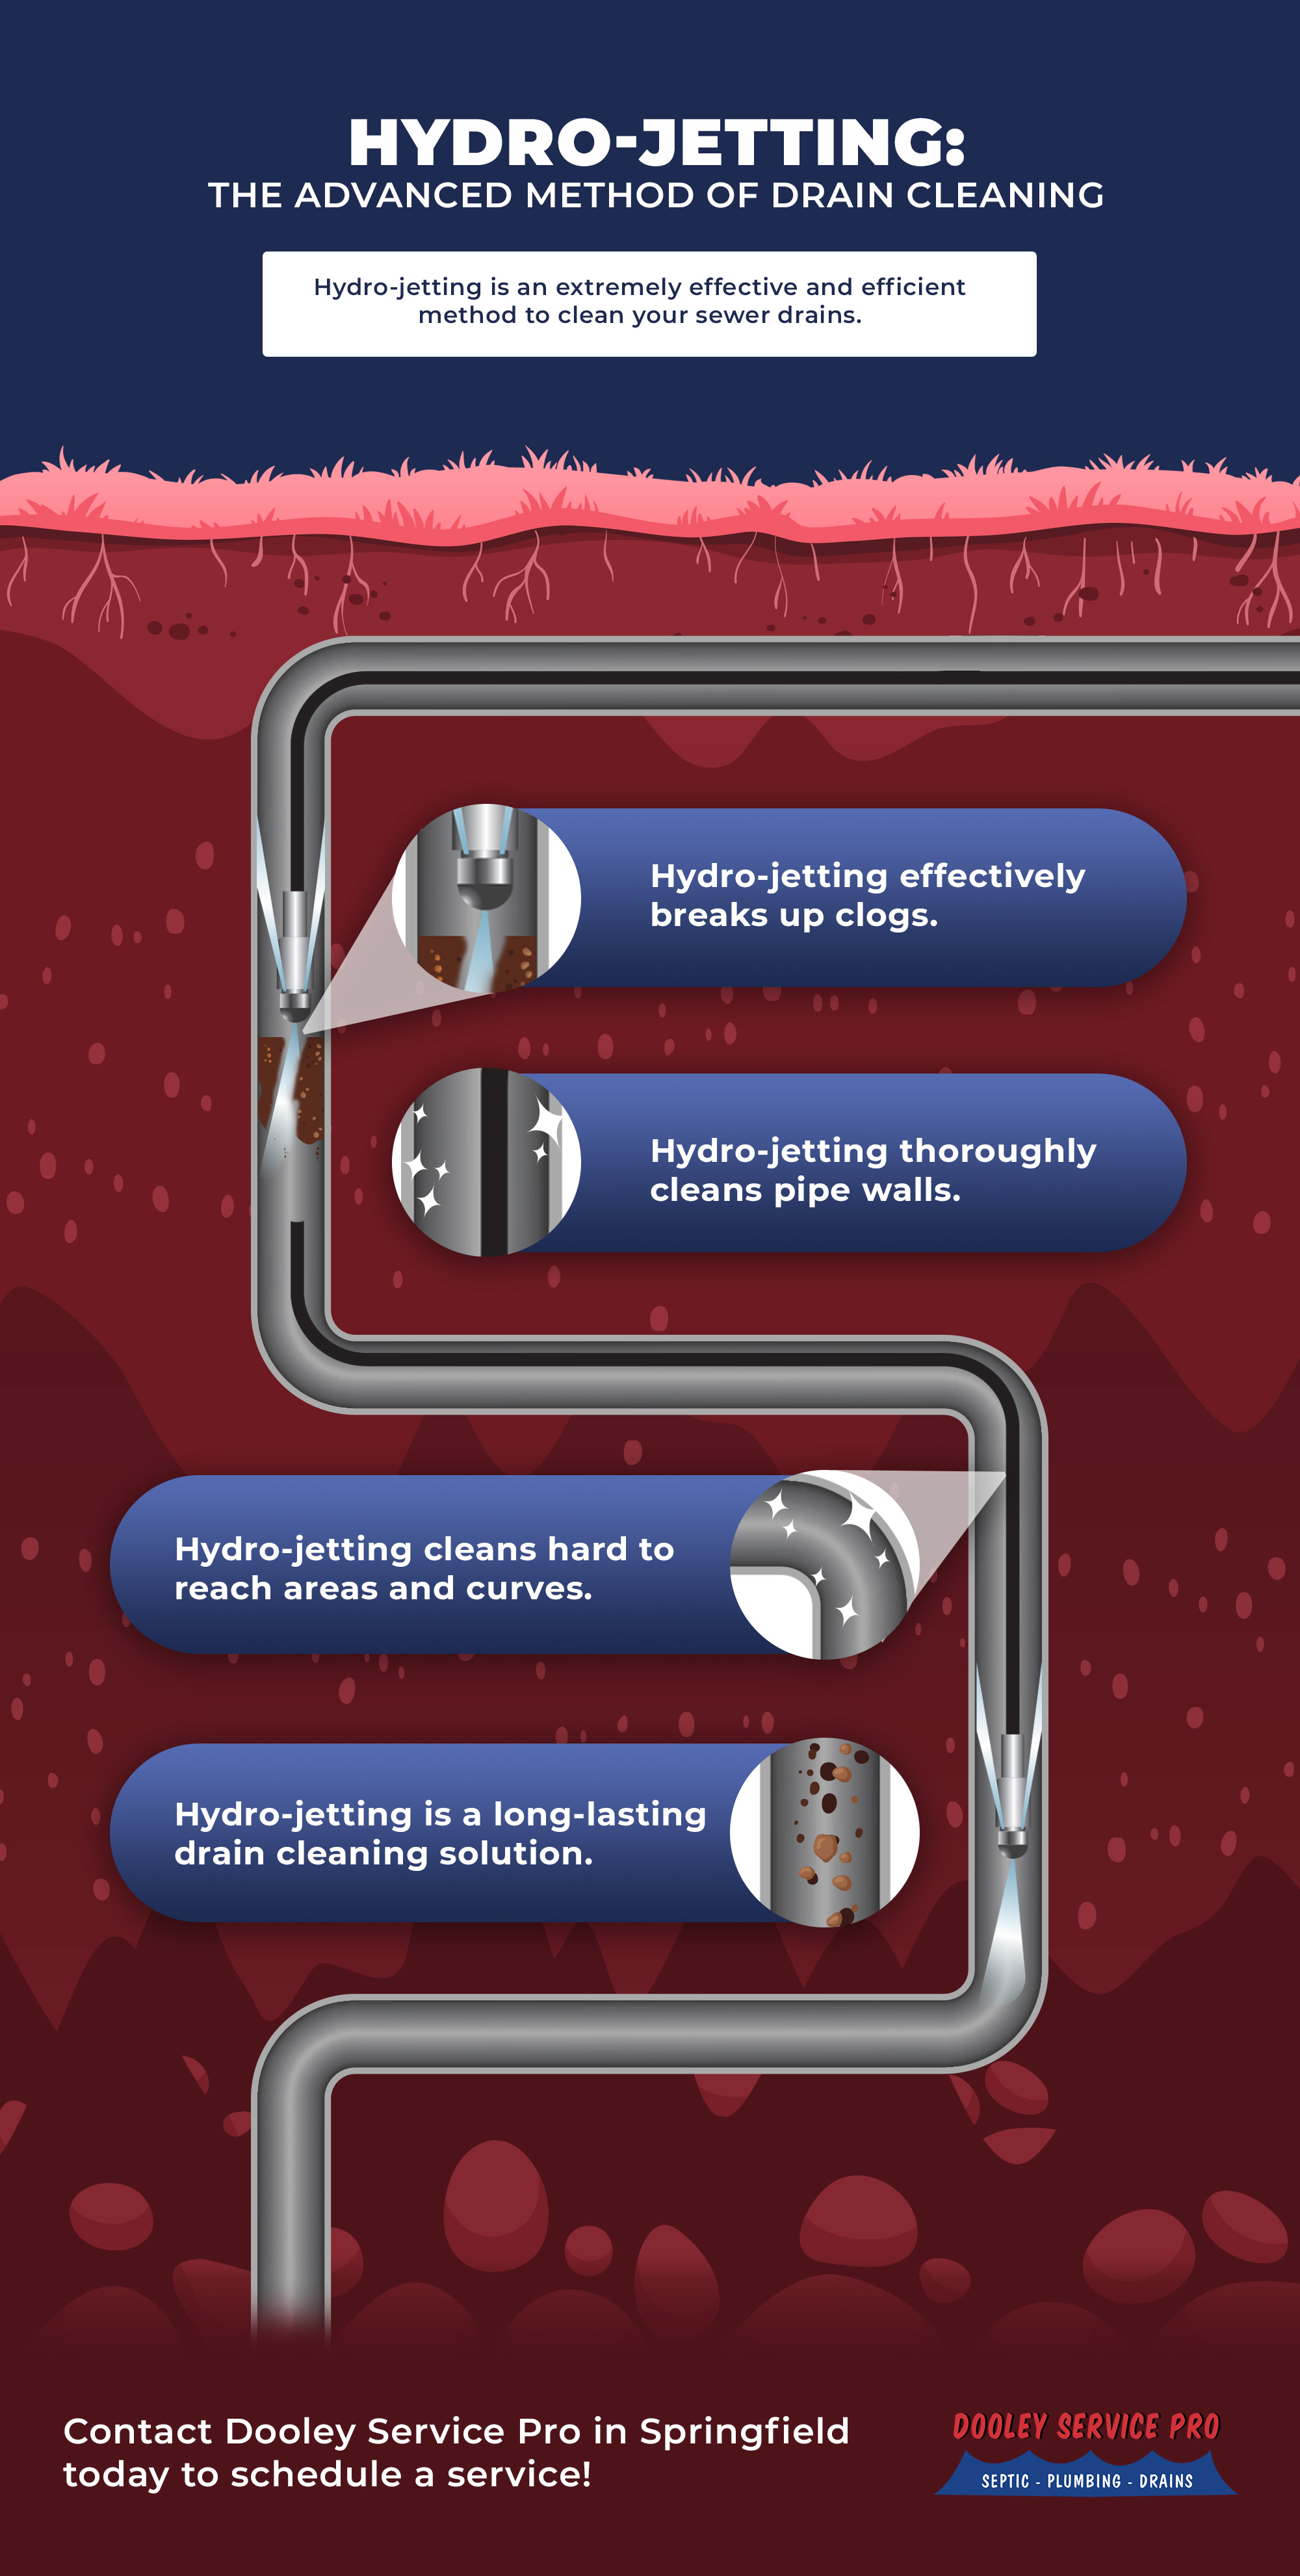 Hydro-Jetting: The Advanced Method of Drain Cleaning